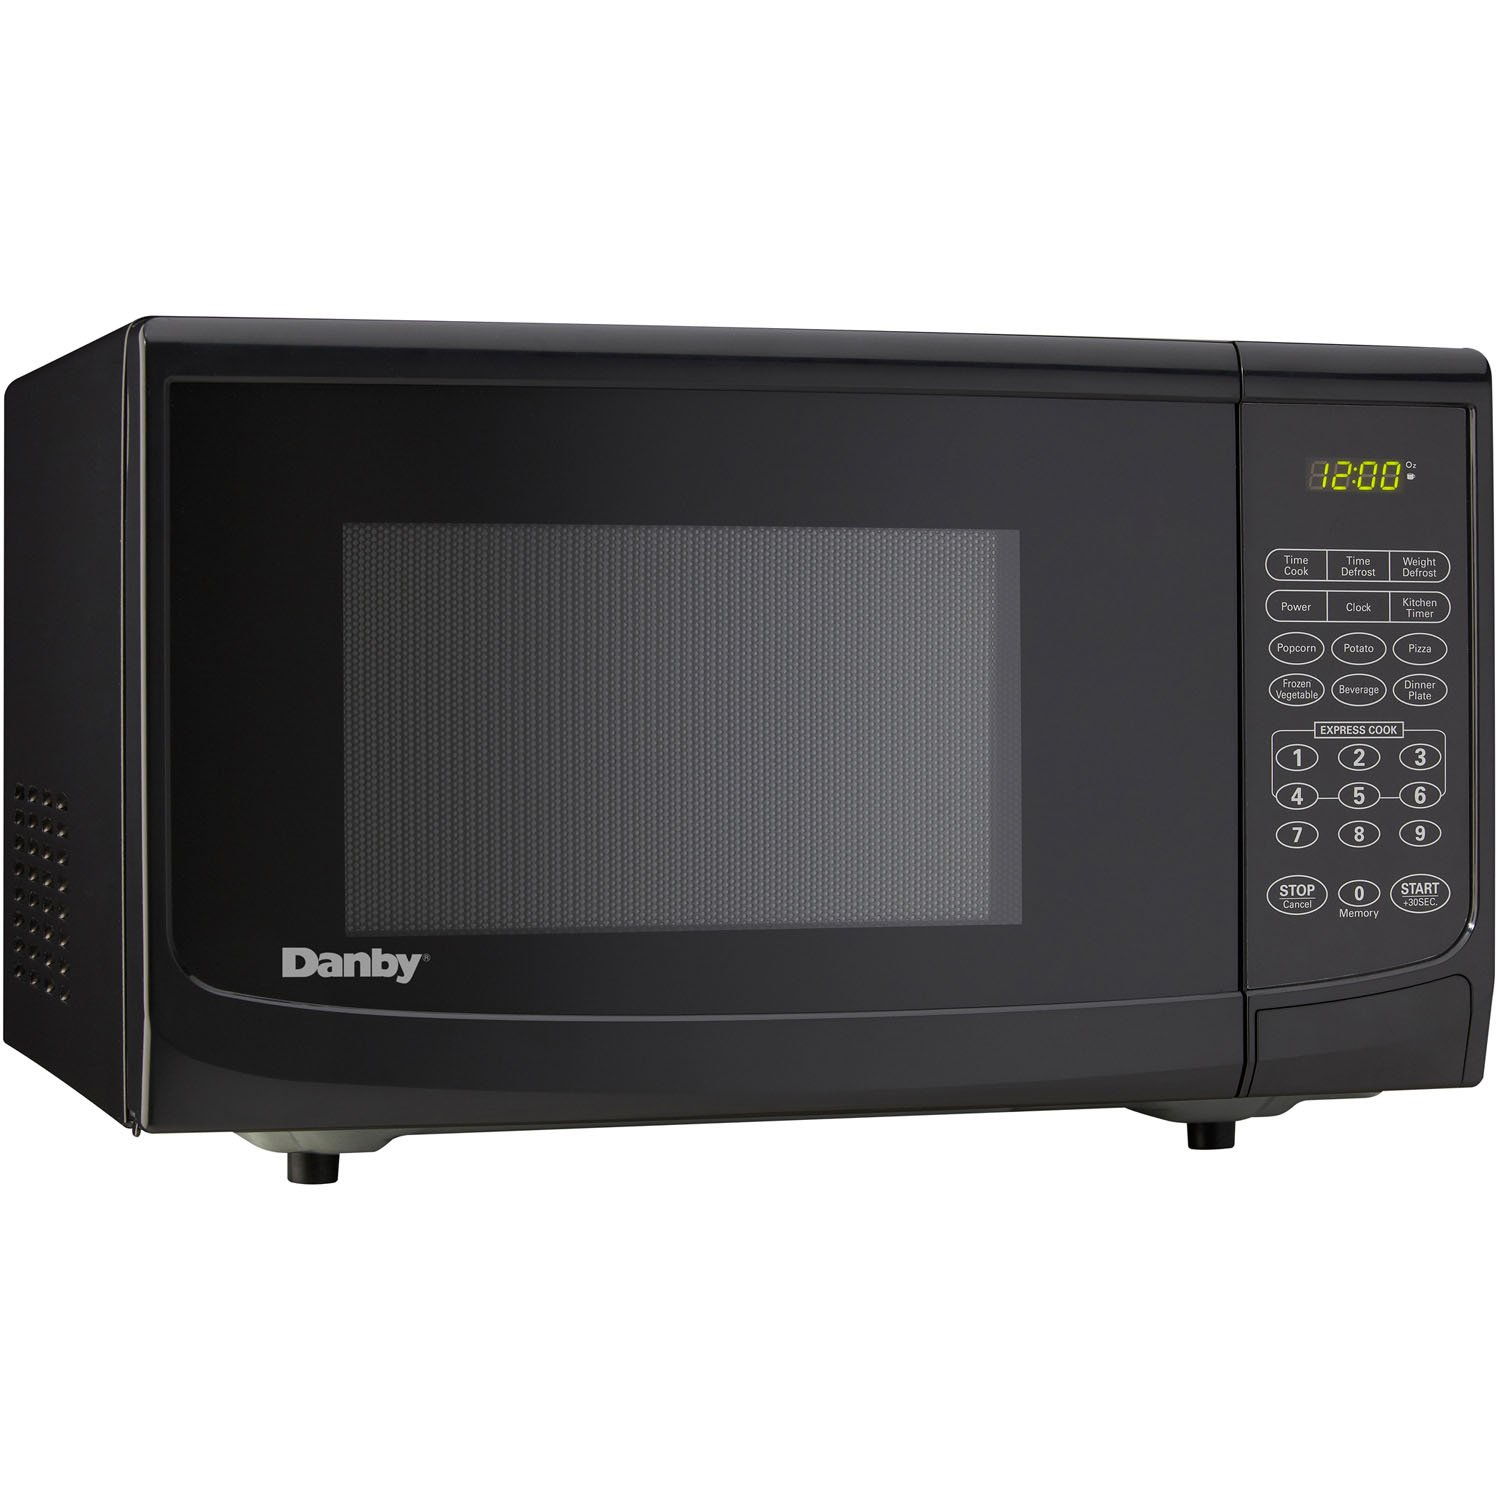 Countertop Microwave White : Image 0 of Danby 1.1 cu.ft. Countertop Microwave, White